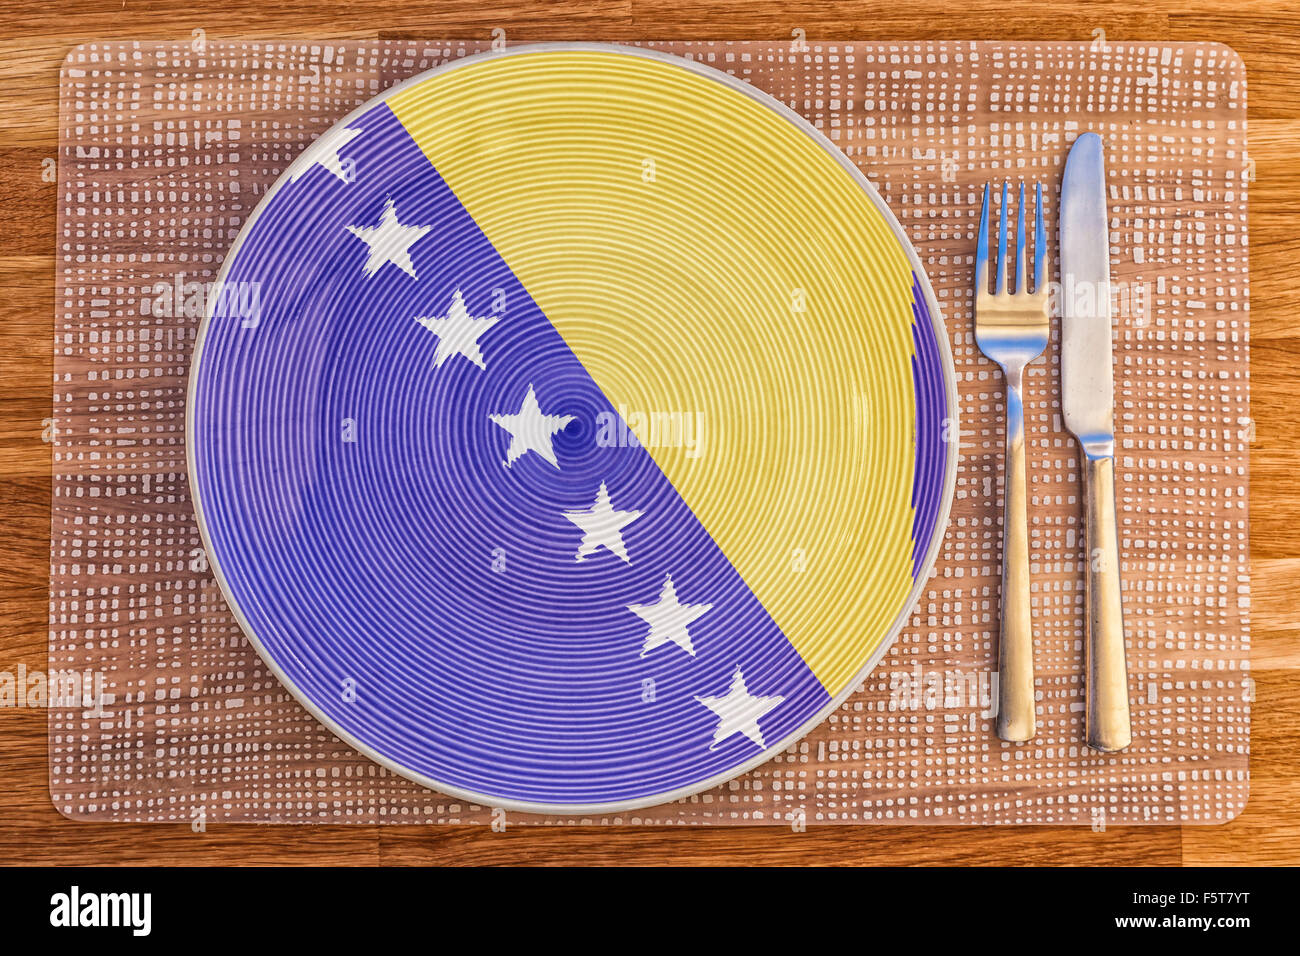 Dinner plate with the flag of Bosnia and Herzegovina on it for your international food and drink concepts. - Stock Image